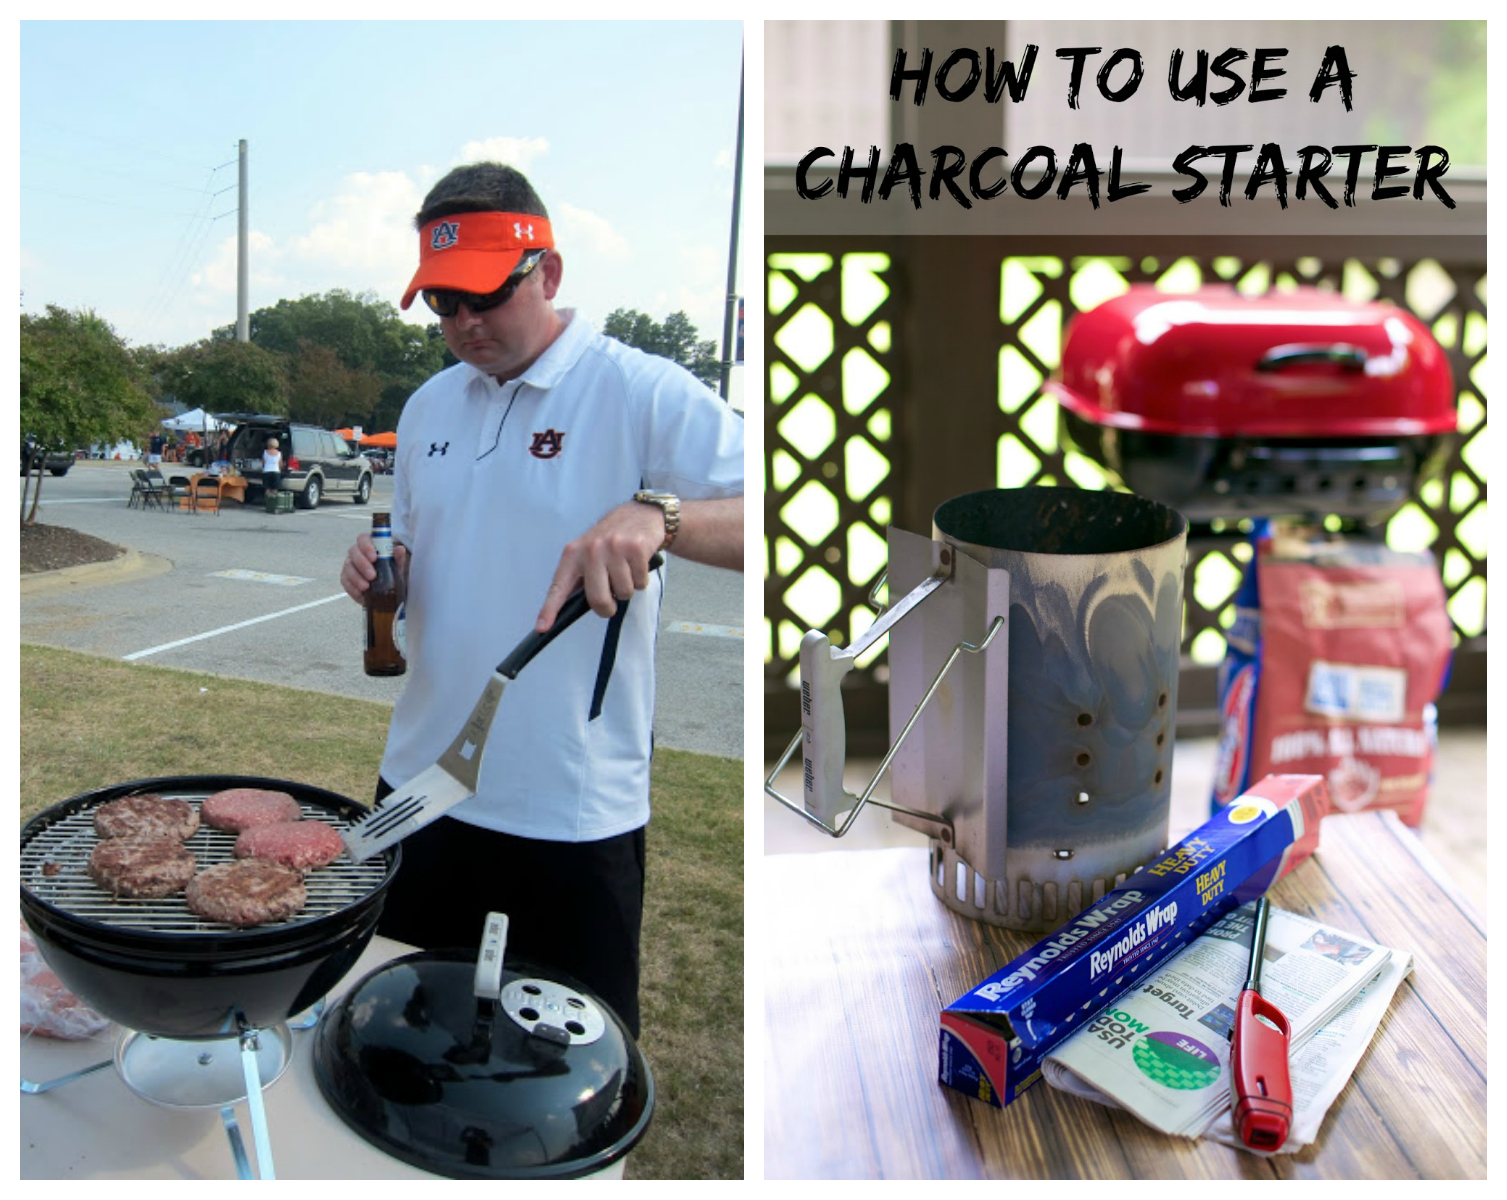 How to use a charcoal starter in the parking lot for tailgating.